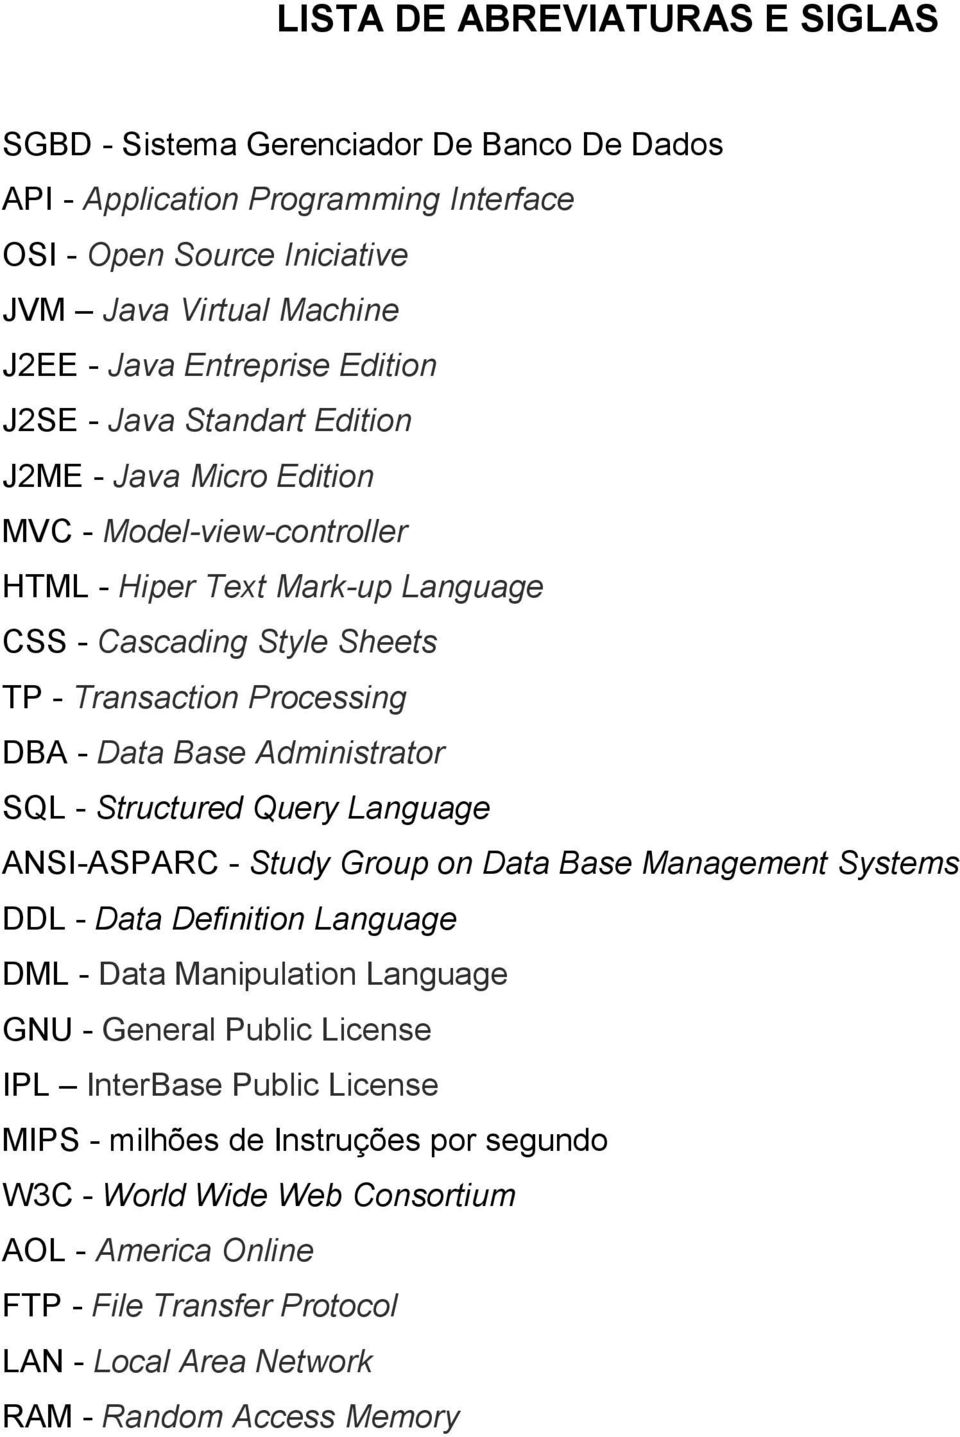 Base Administrator SQL - Structured Query Language ANSI-ASPARC - Study Group on Data Base Management Systems DDL - Data Definition Language DML - Data Manipulation Language GNU - General Public